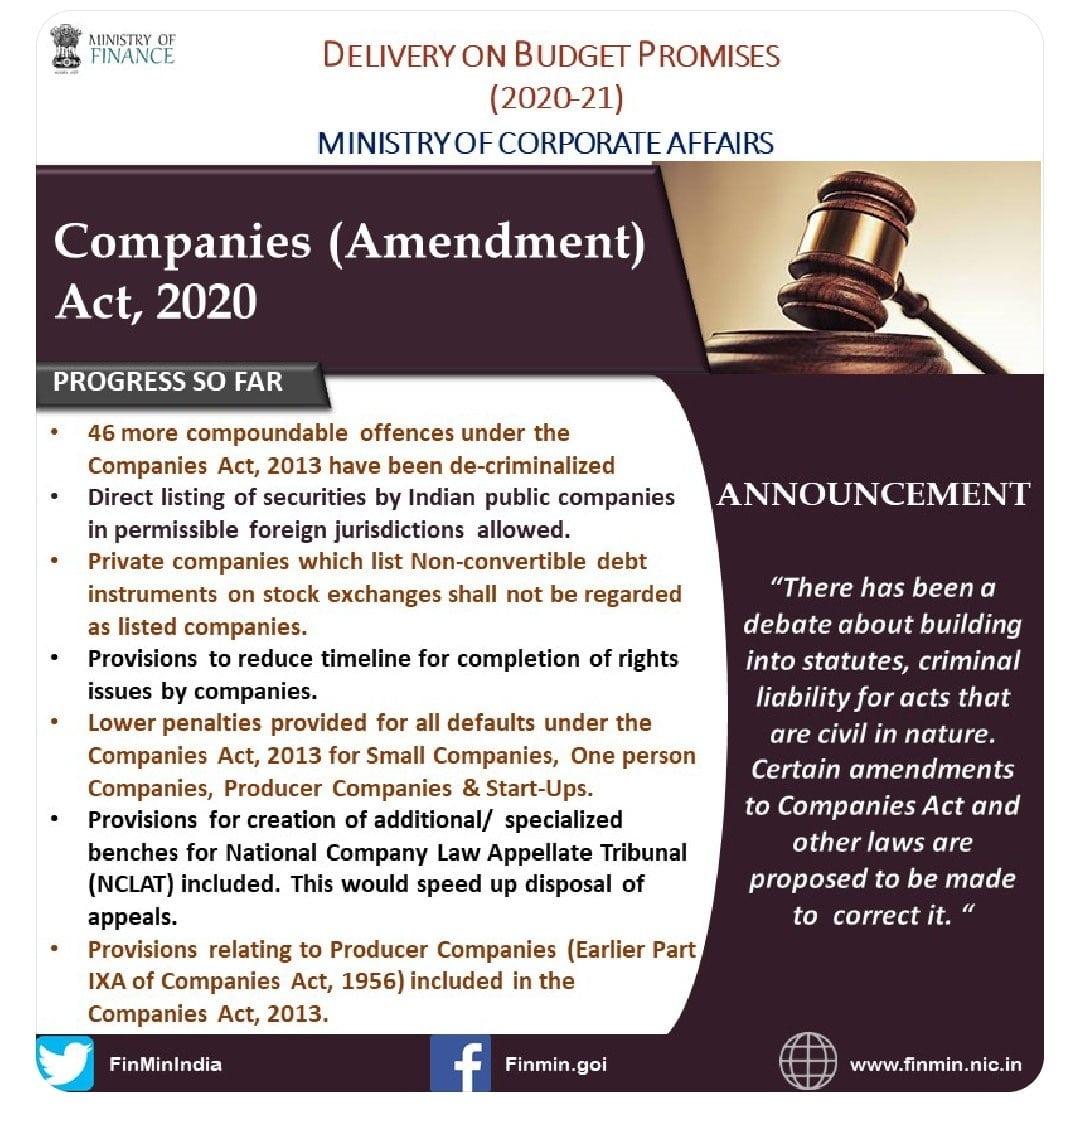 <p>Re-strengthening economy through reforms: Amendments in the Companies Act to facilitate greater ease of living to law-abiding corporates.</p>